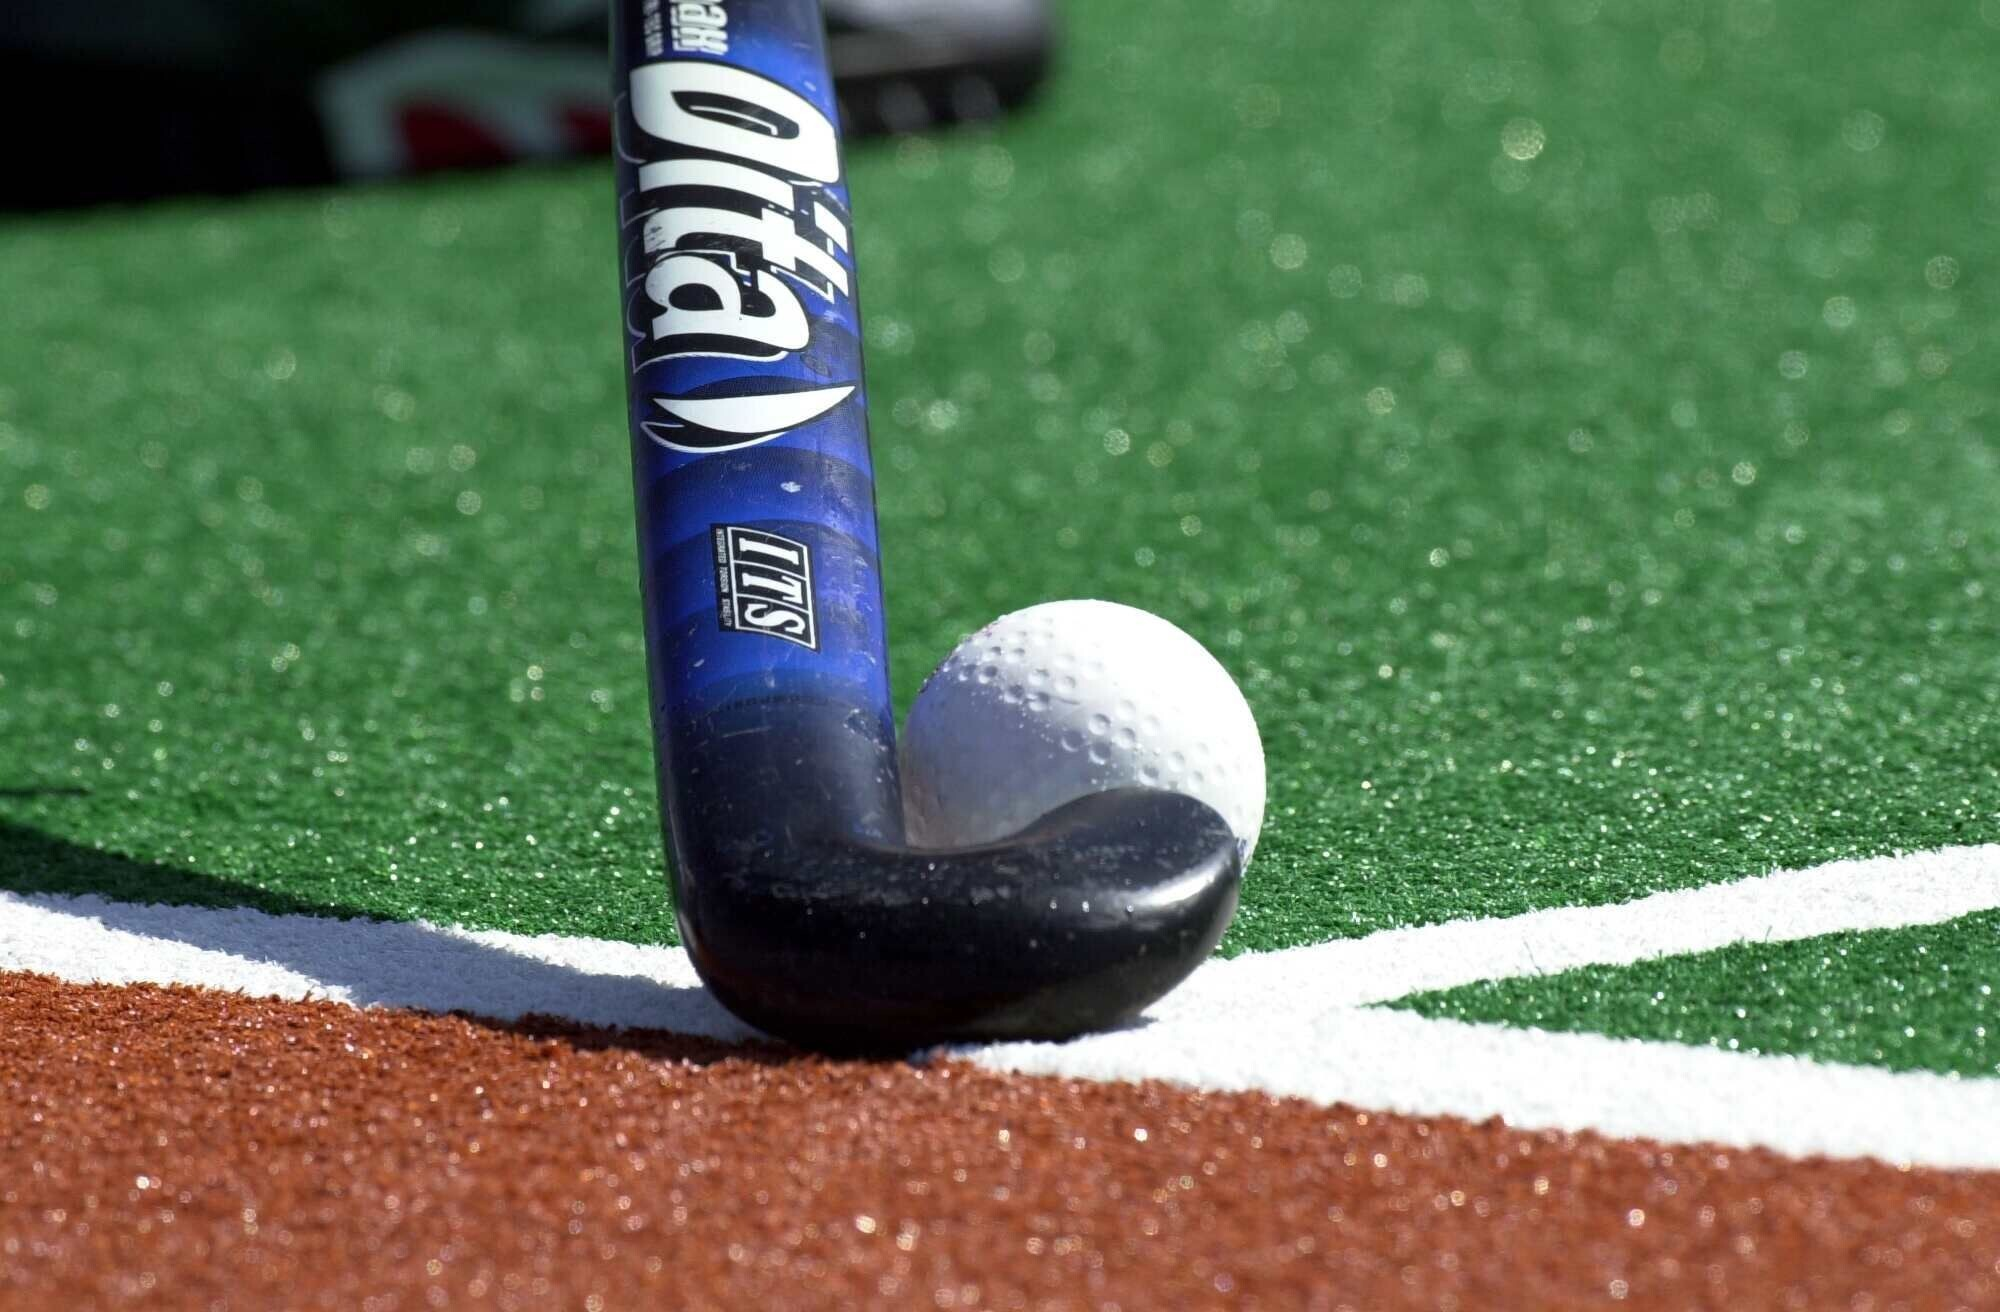 Hockey Stick And Ball Hd Wallpapers